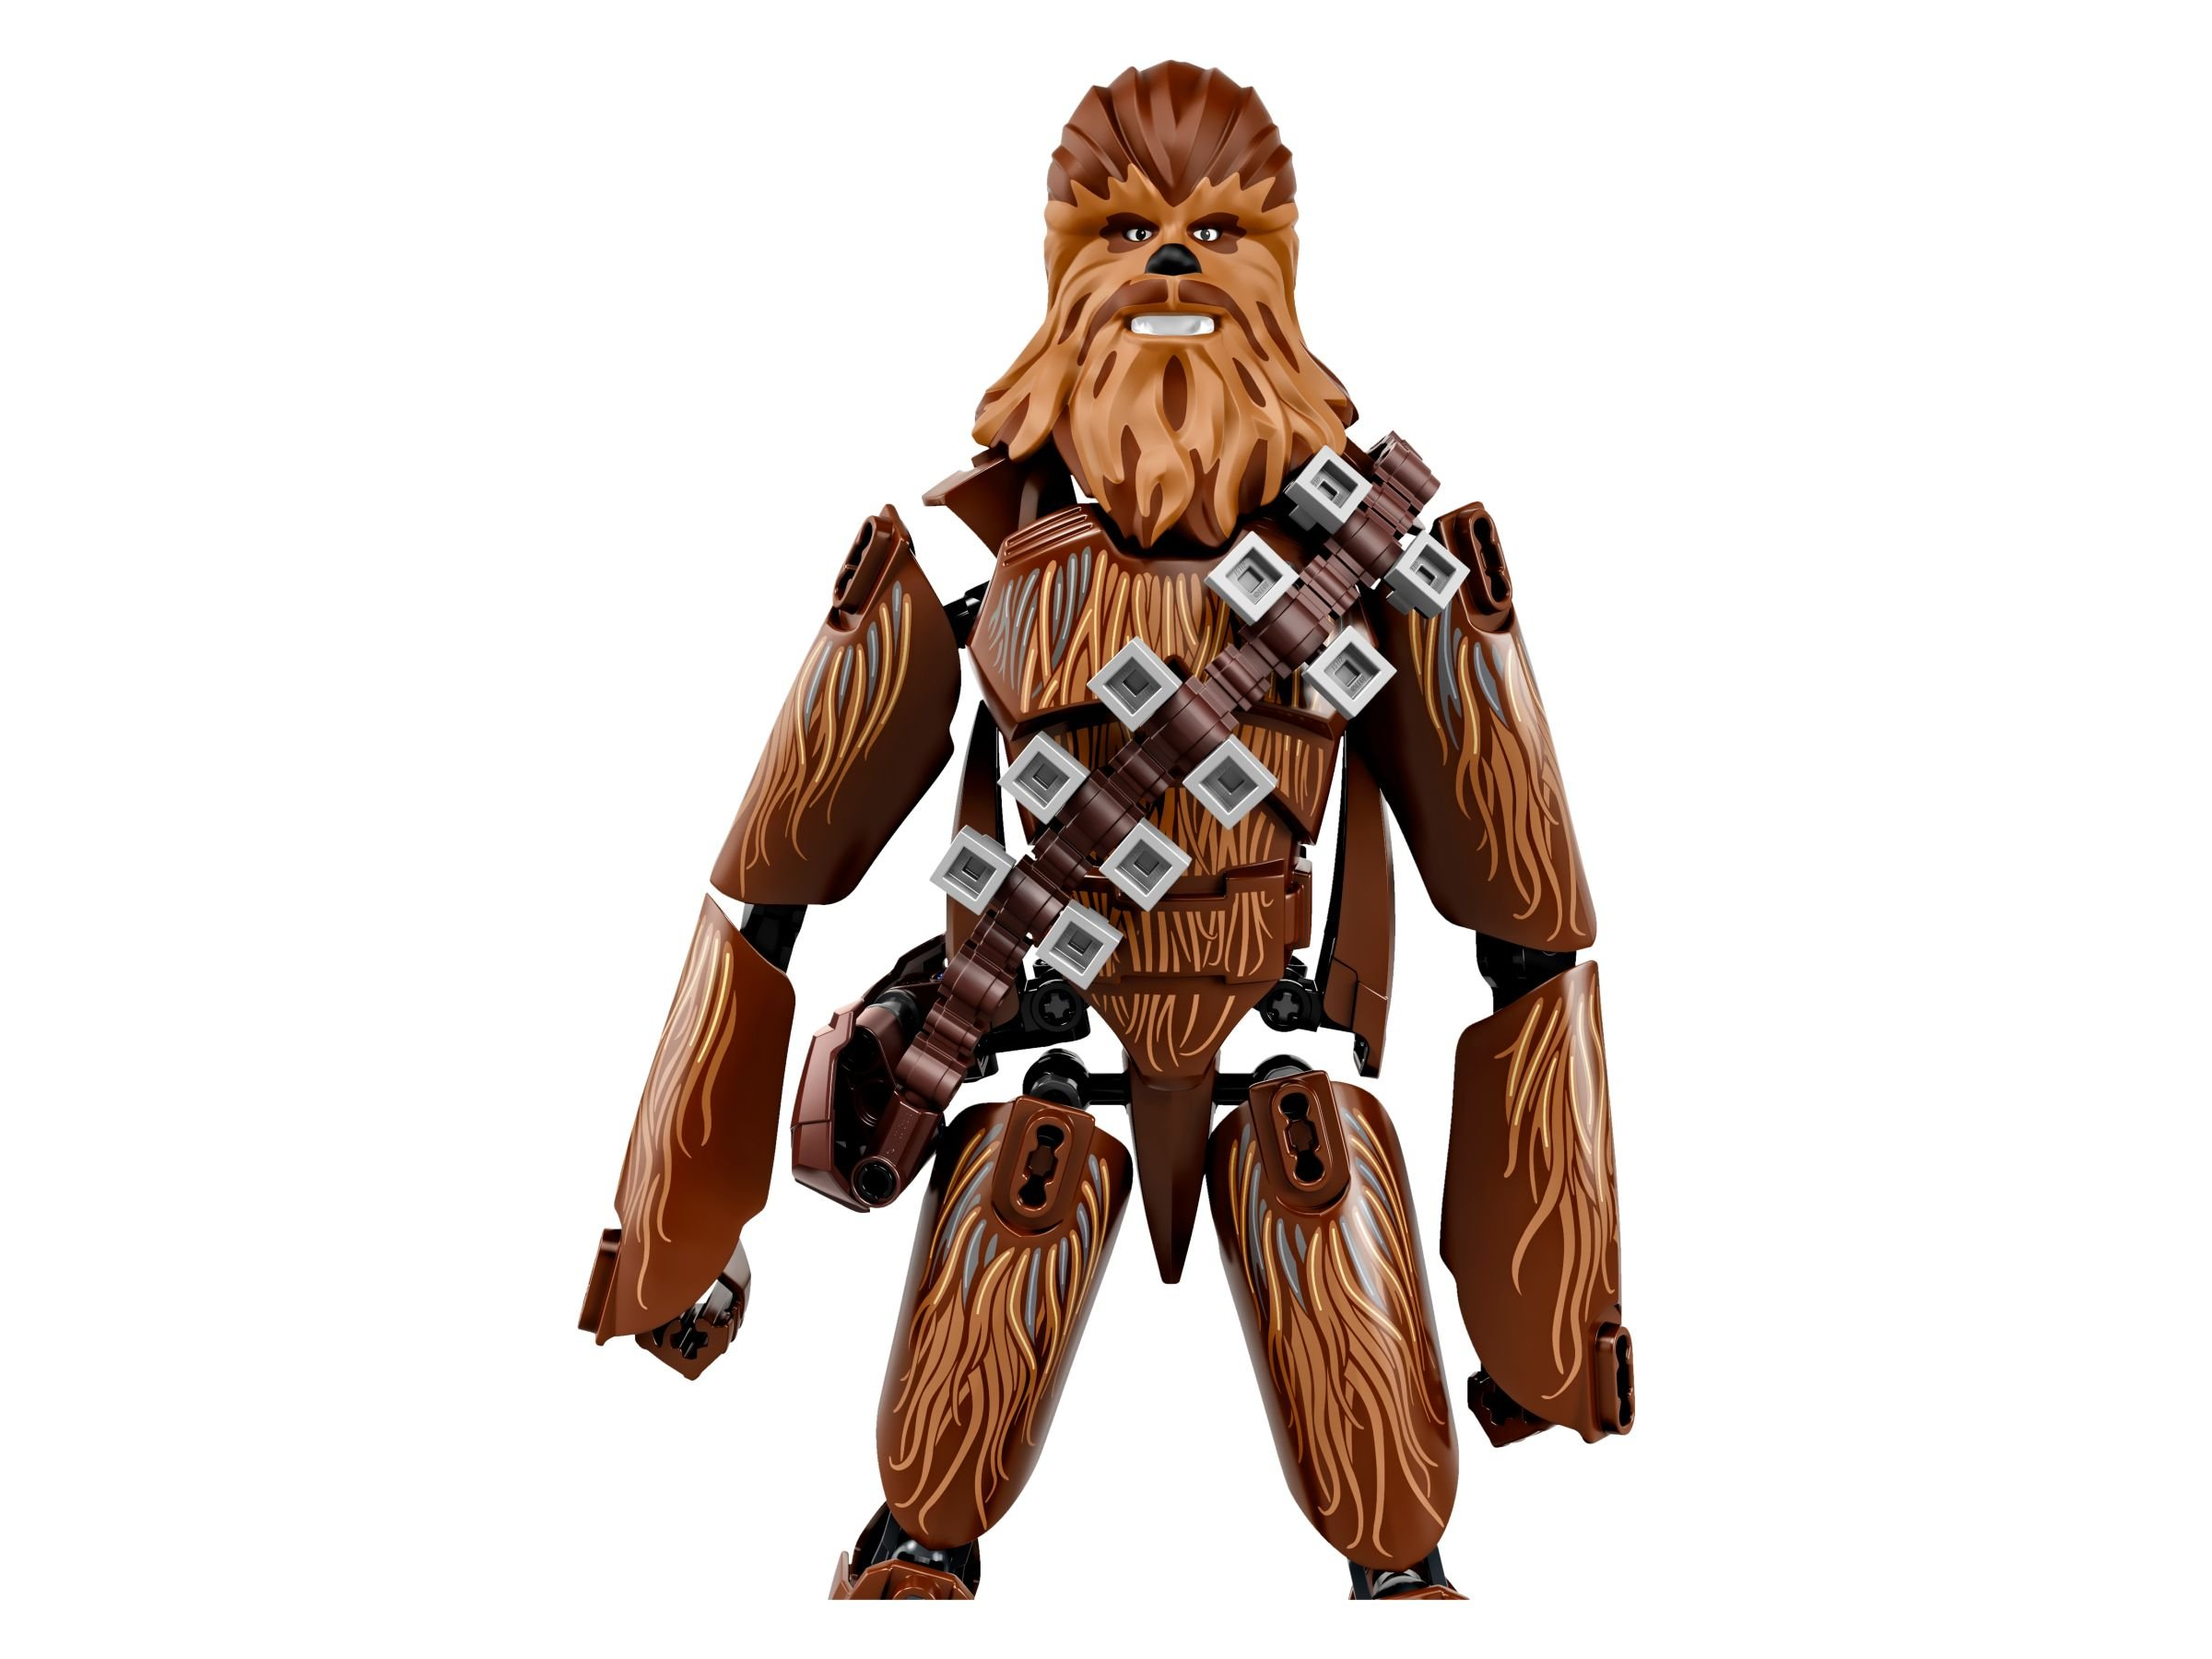 LEGO Star Wars Buildable Figures 75530 Chewbacca™ LEGO_75530_alt2.jpg